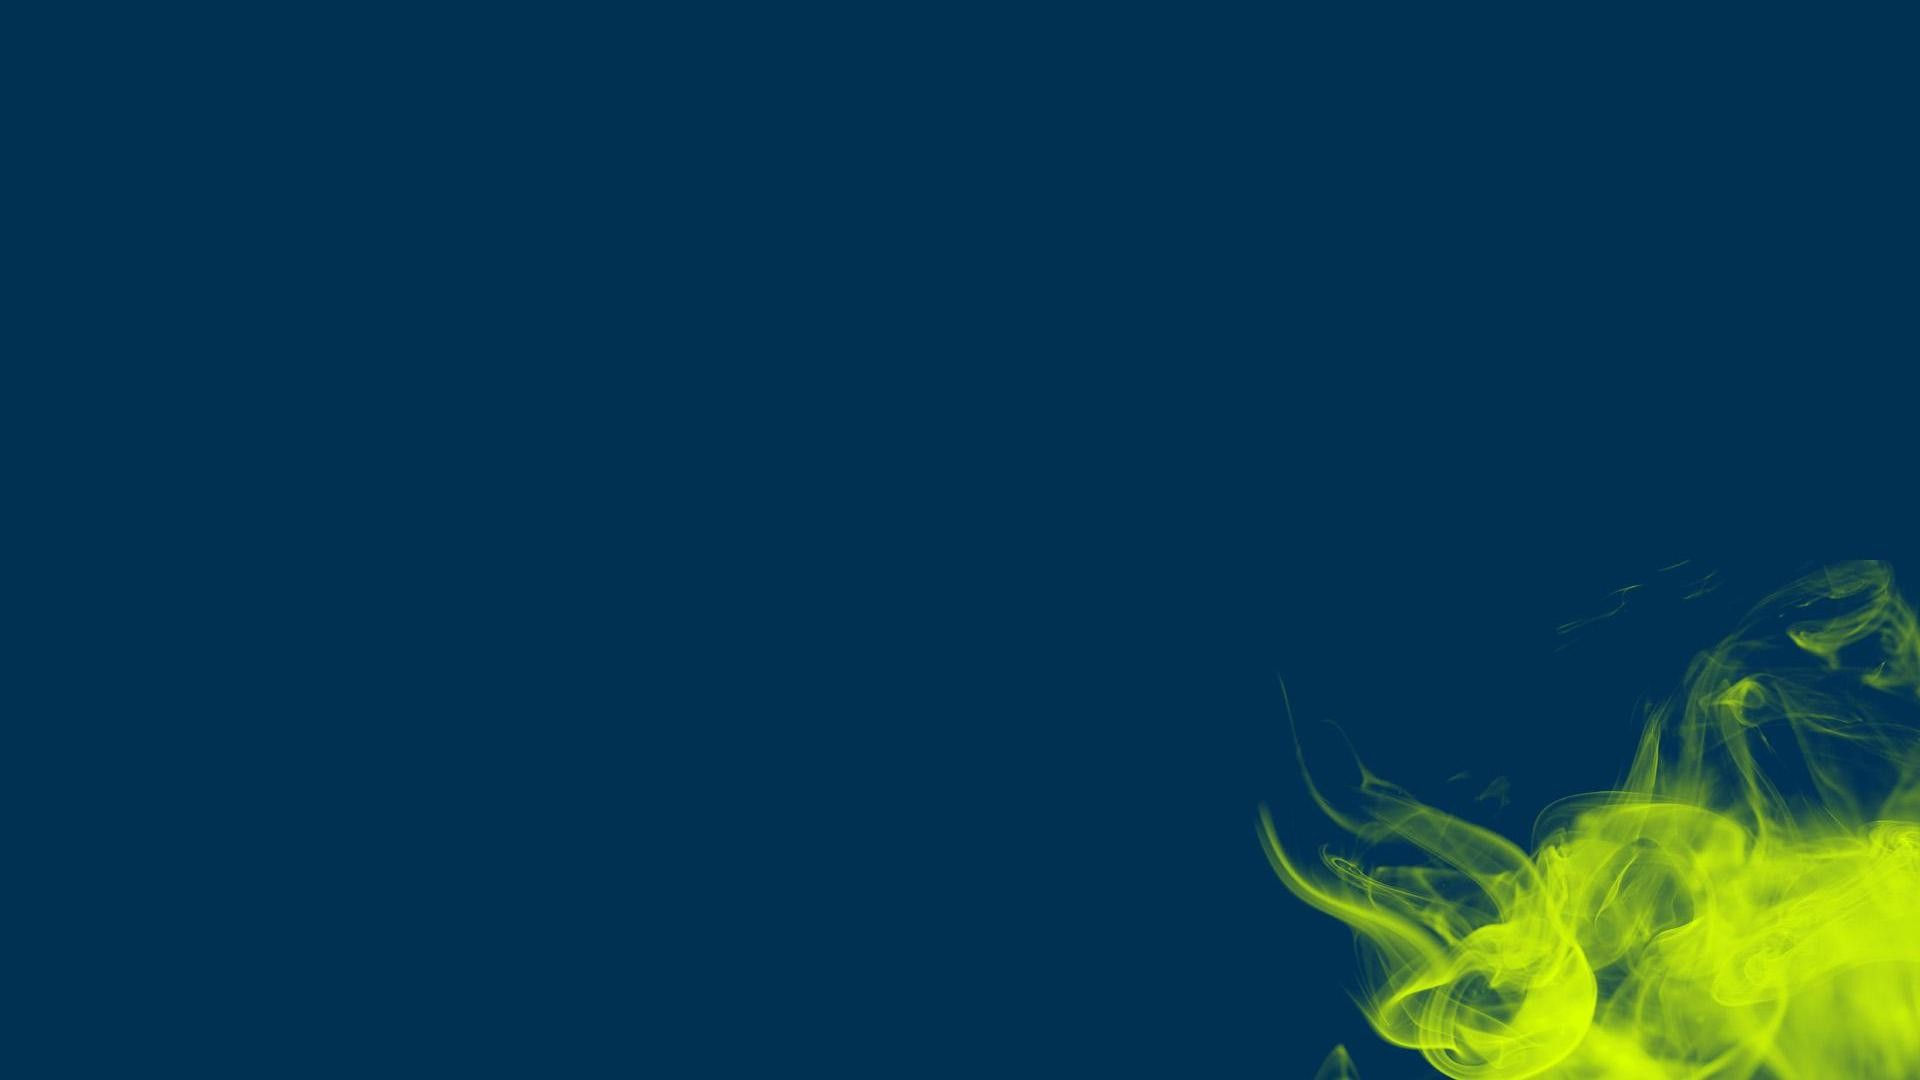 … blue wallpaper for background 17 · yellow …